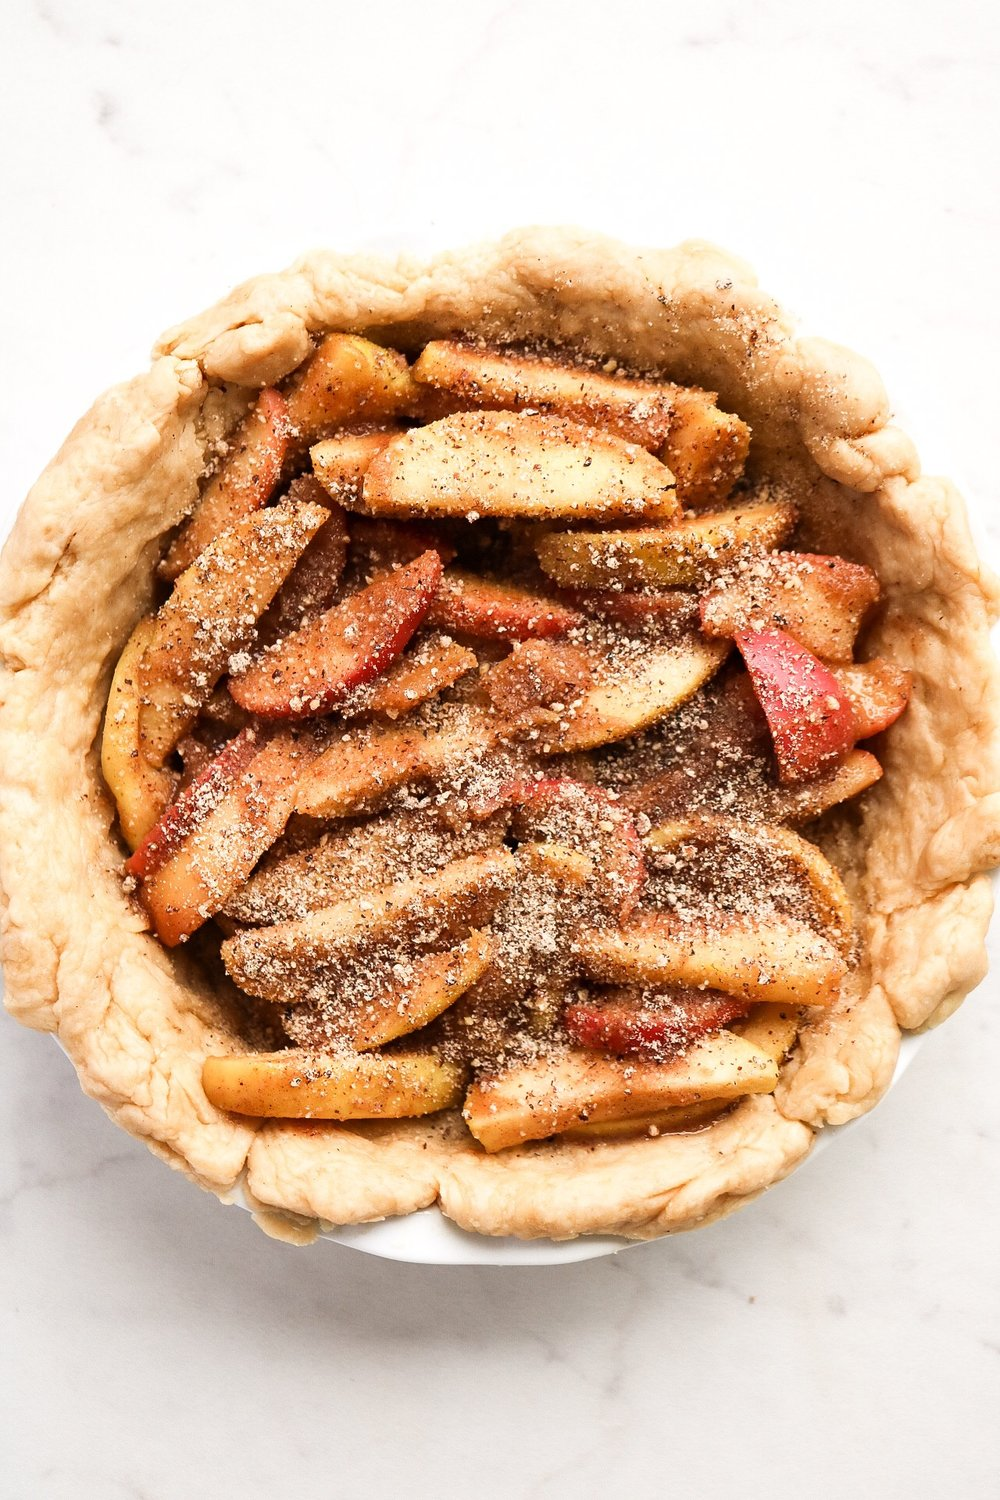 Once the apples are mostly cooked, place them into your crust.